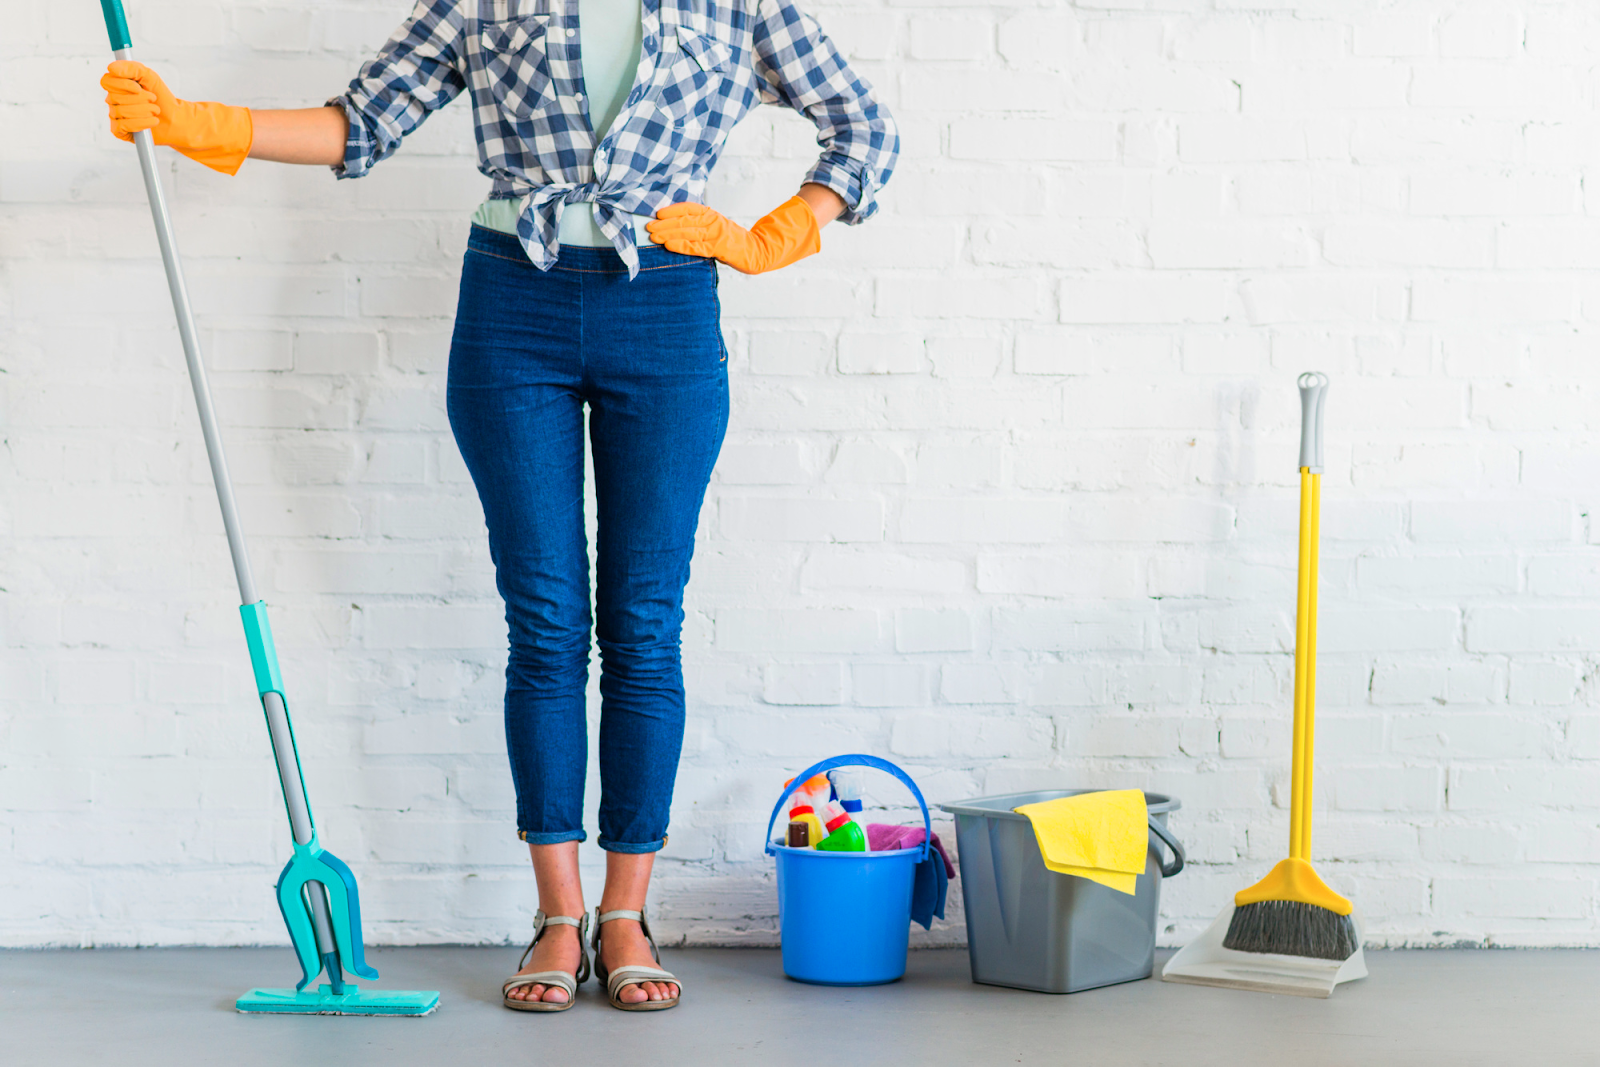 lady standing in front of brick wall holding cleaning equipment